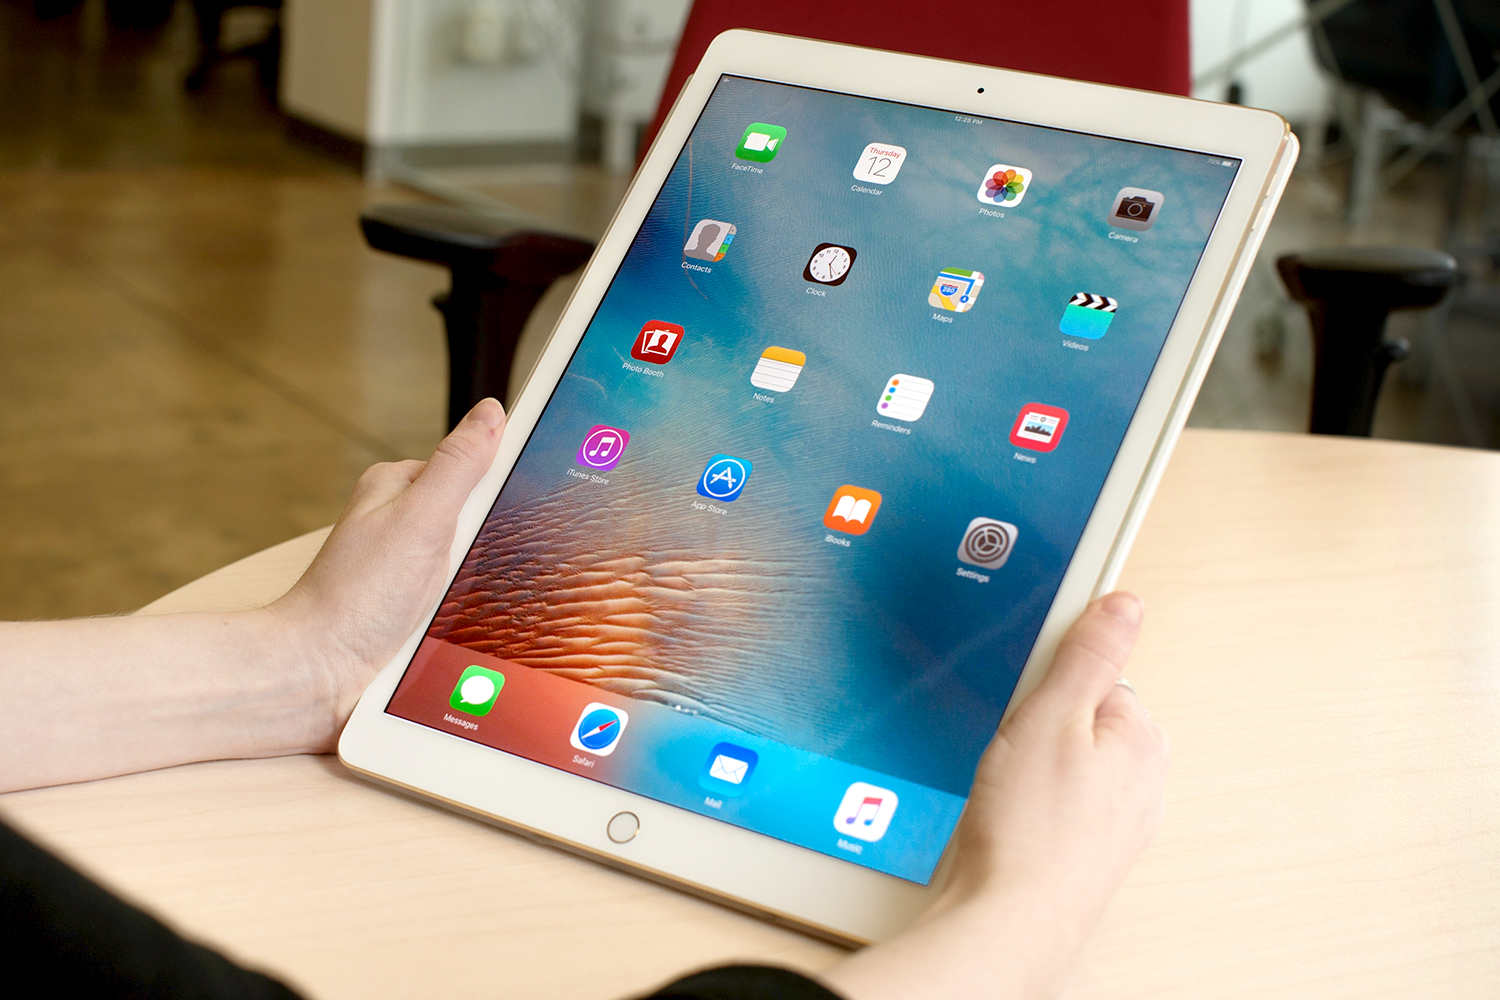 Apple Predicted To Sell 2 6 Million Ipad Pro Units Despite Production Delays